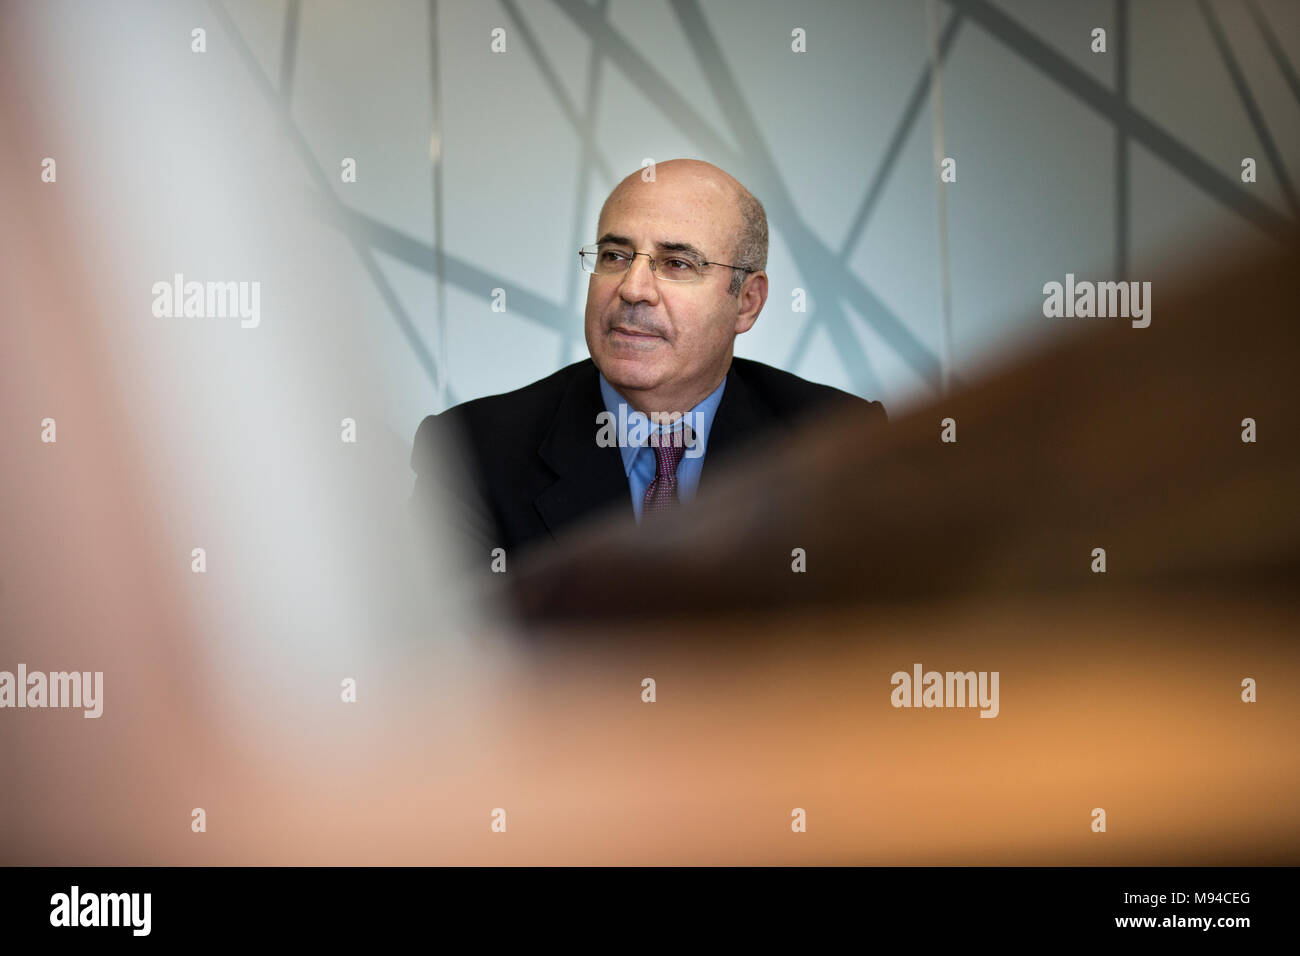 Activist Bill Browder. CEO and co-founder of Hermitage Capital Management, he has been one of Russia's most high-profile public enemies for may years. - Stock Image